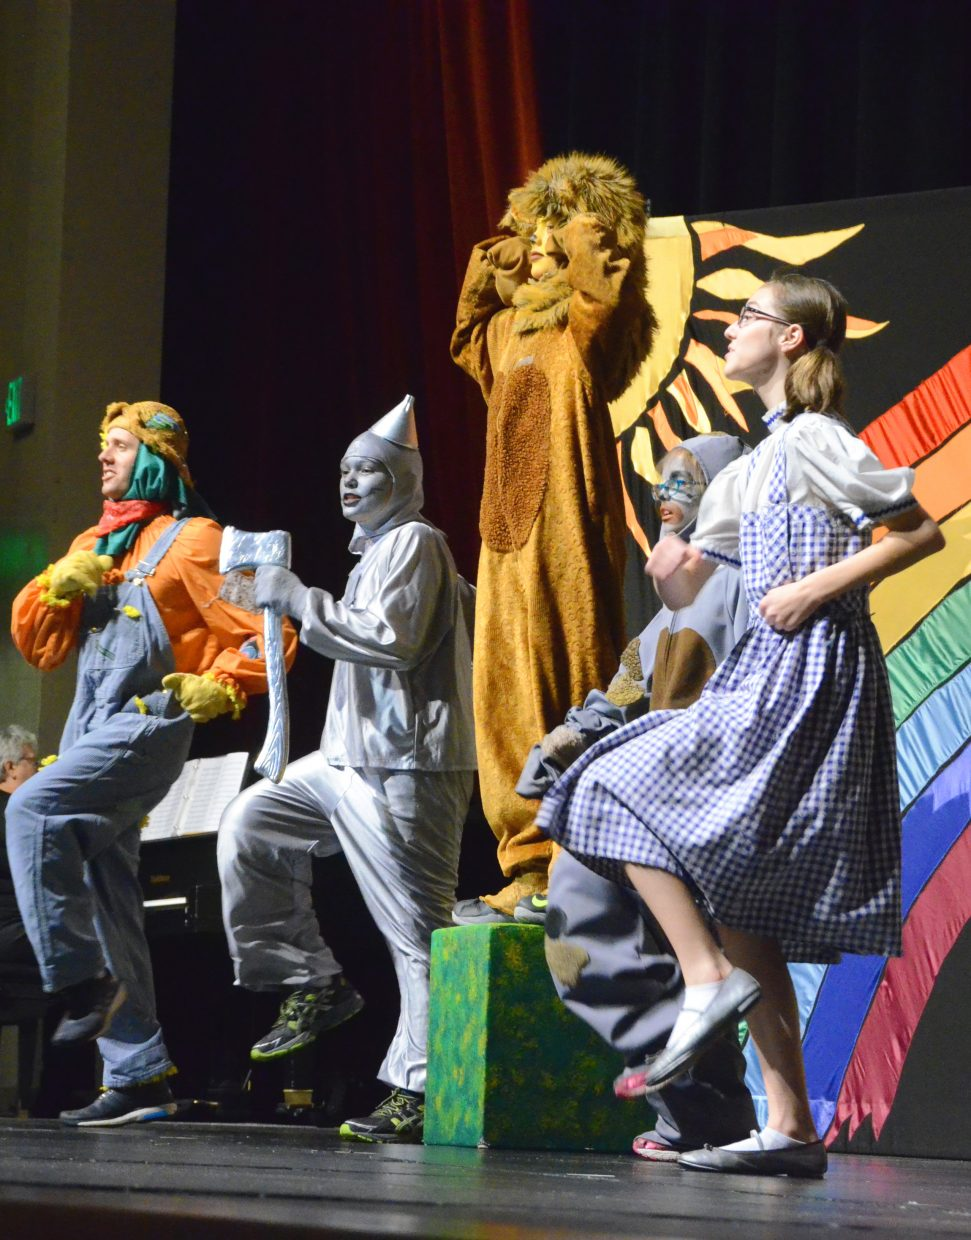 """The Cowardly Lion (Ryan Peck) shows his newfound confidence  with the help of the Scarecrow (Chris Wilkinson), the Tin Man (Braedyn Barton), Toto (Rebekah Bolton) and Dorothy (Rachel Bolton) in the Missoula Children's Theatre production of """"The Wizard of Oz"""" on Saturday afternoon in the Moffat County High School auditorium."""